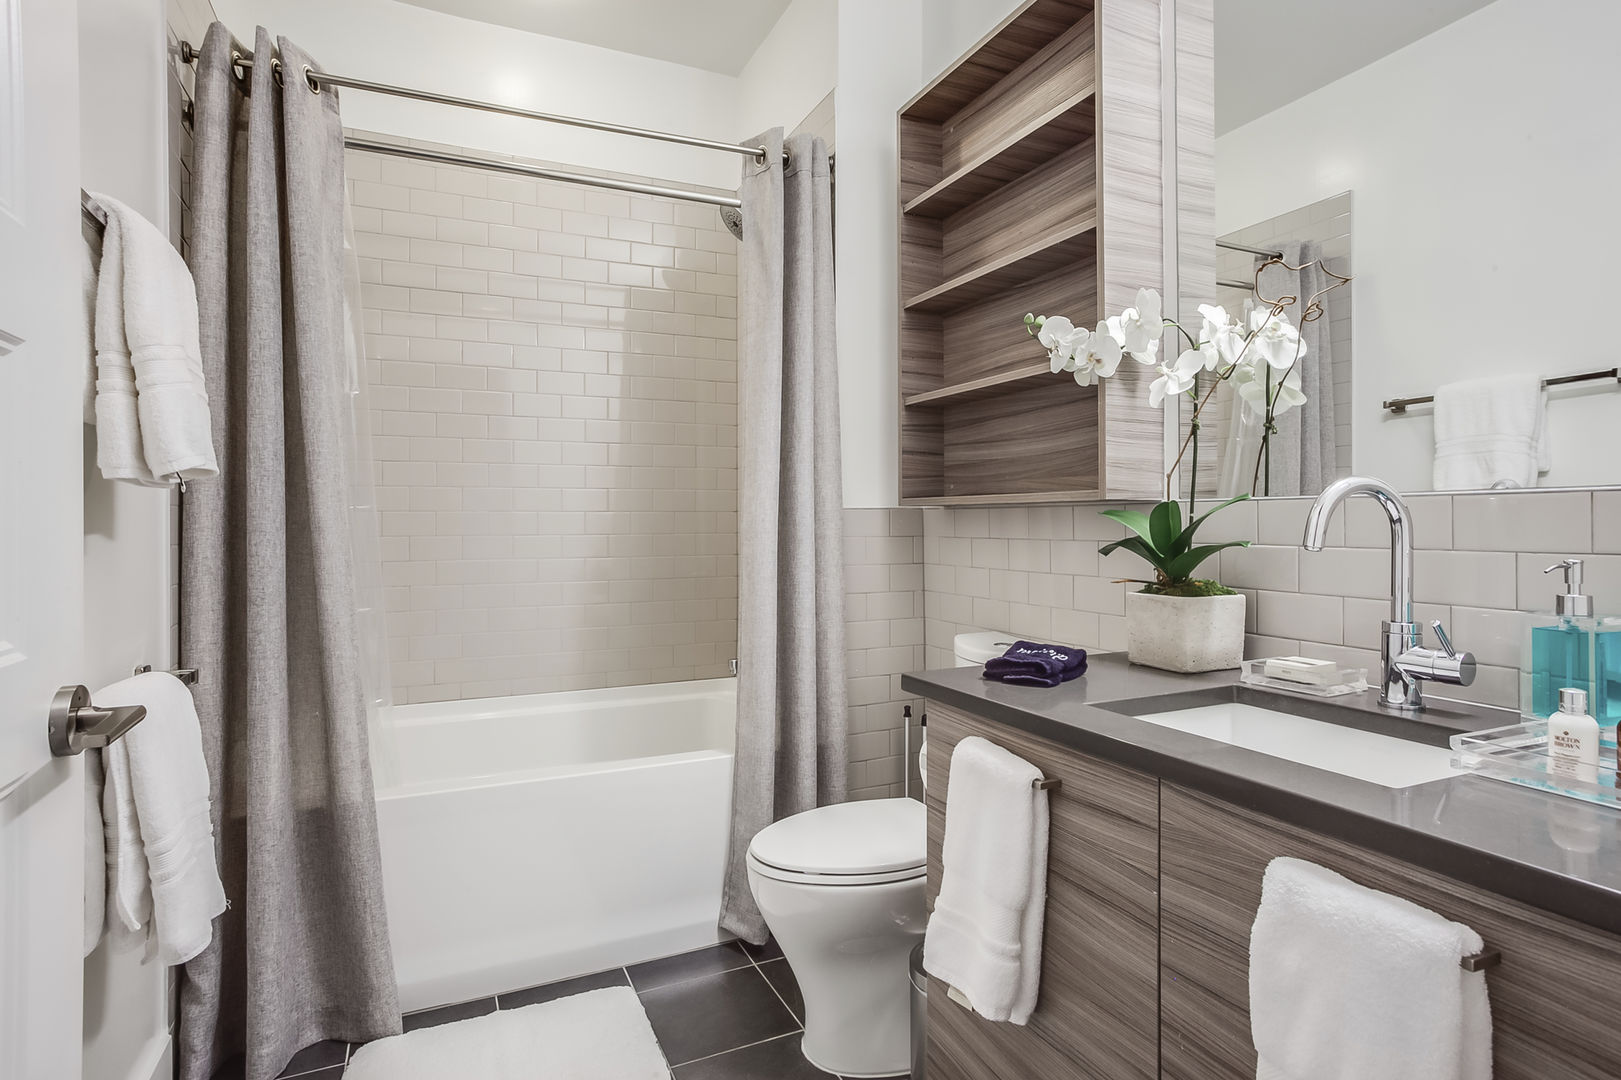 Guest Bathroom Features at Tub/Shower Combo